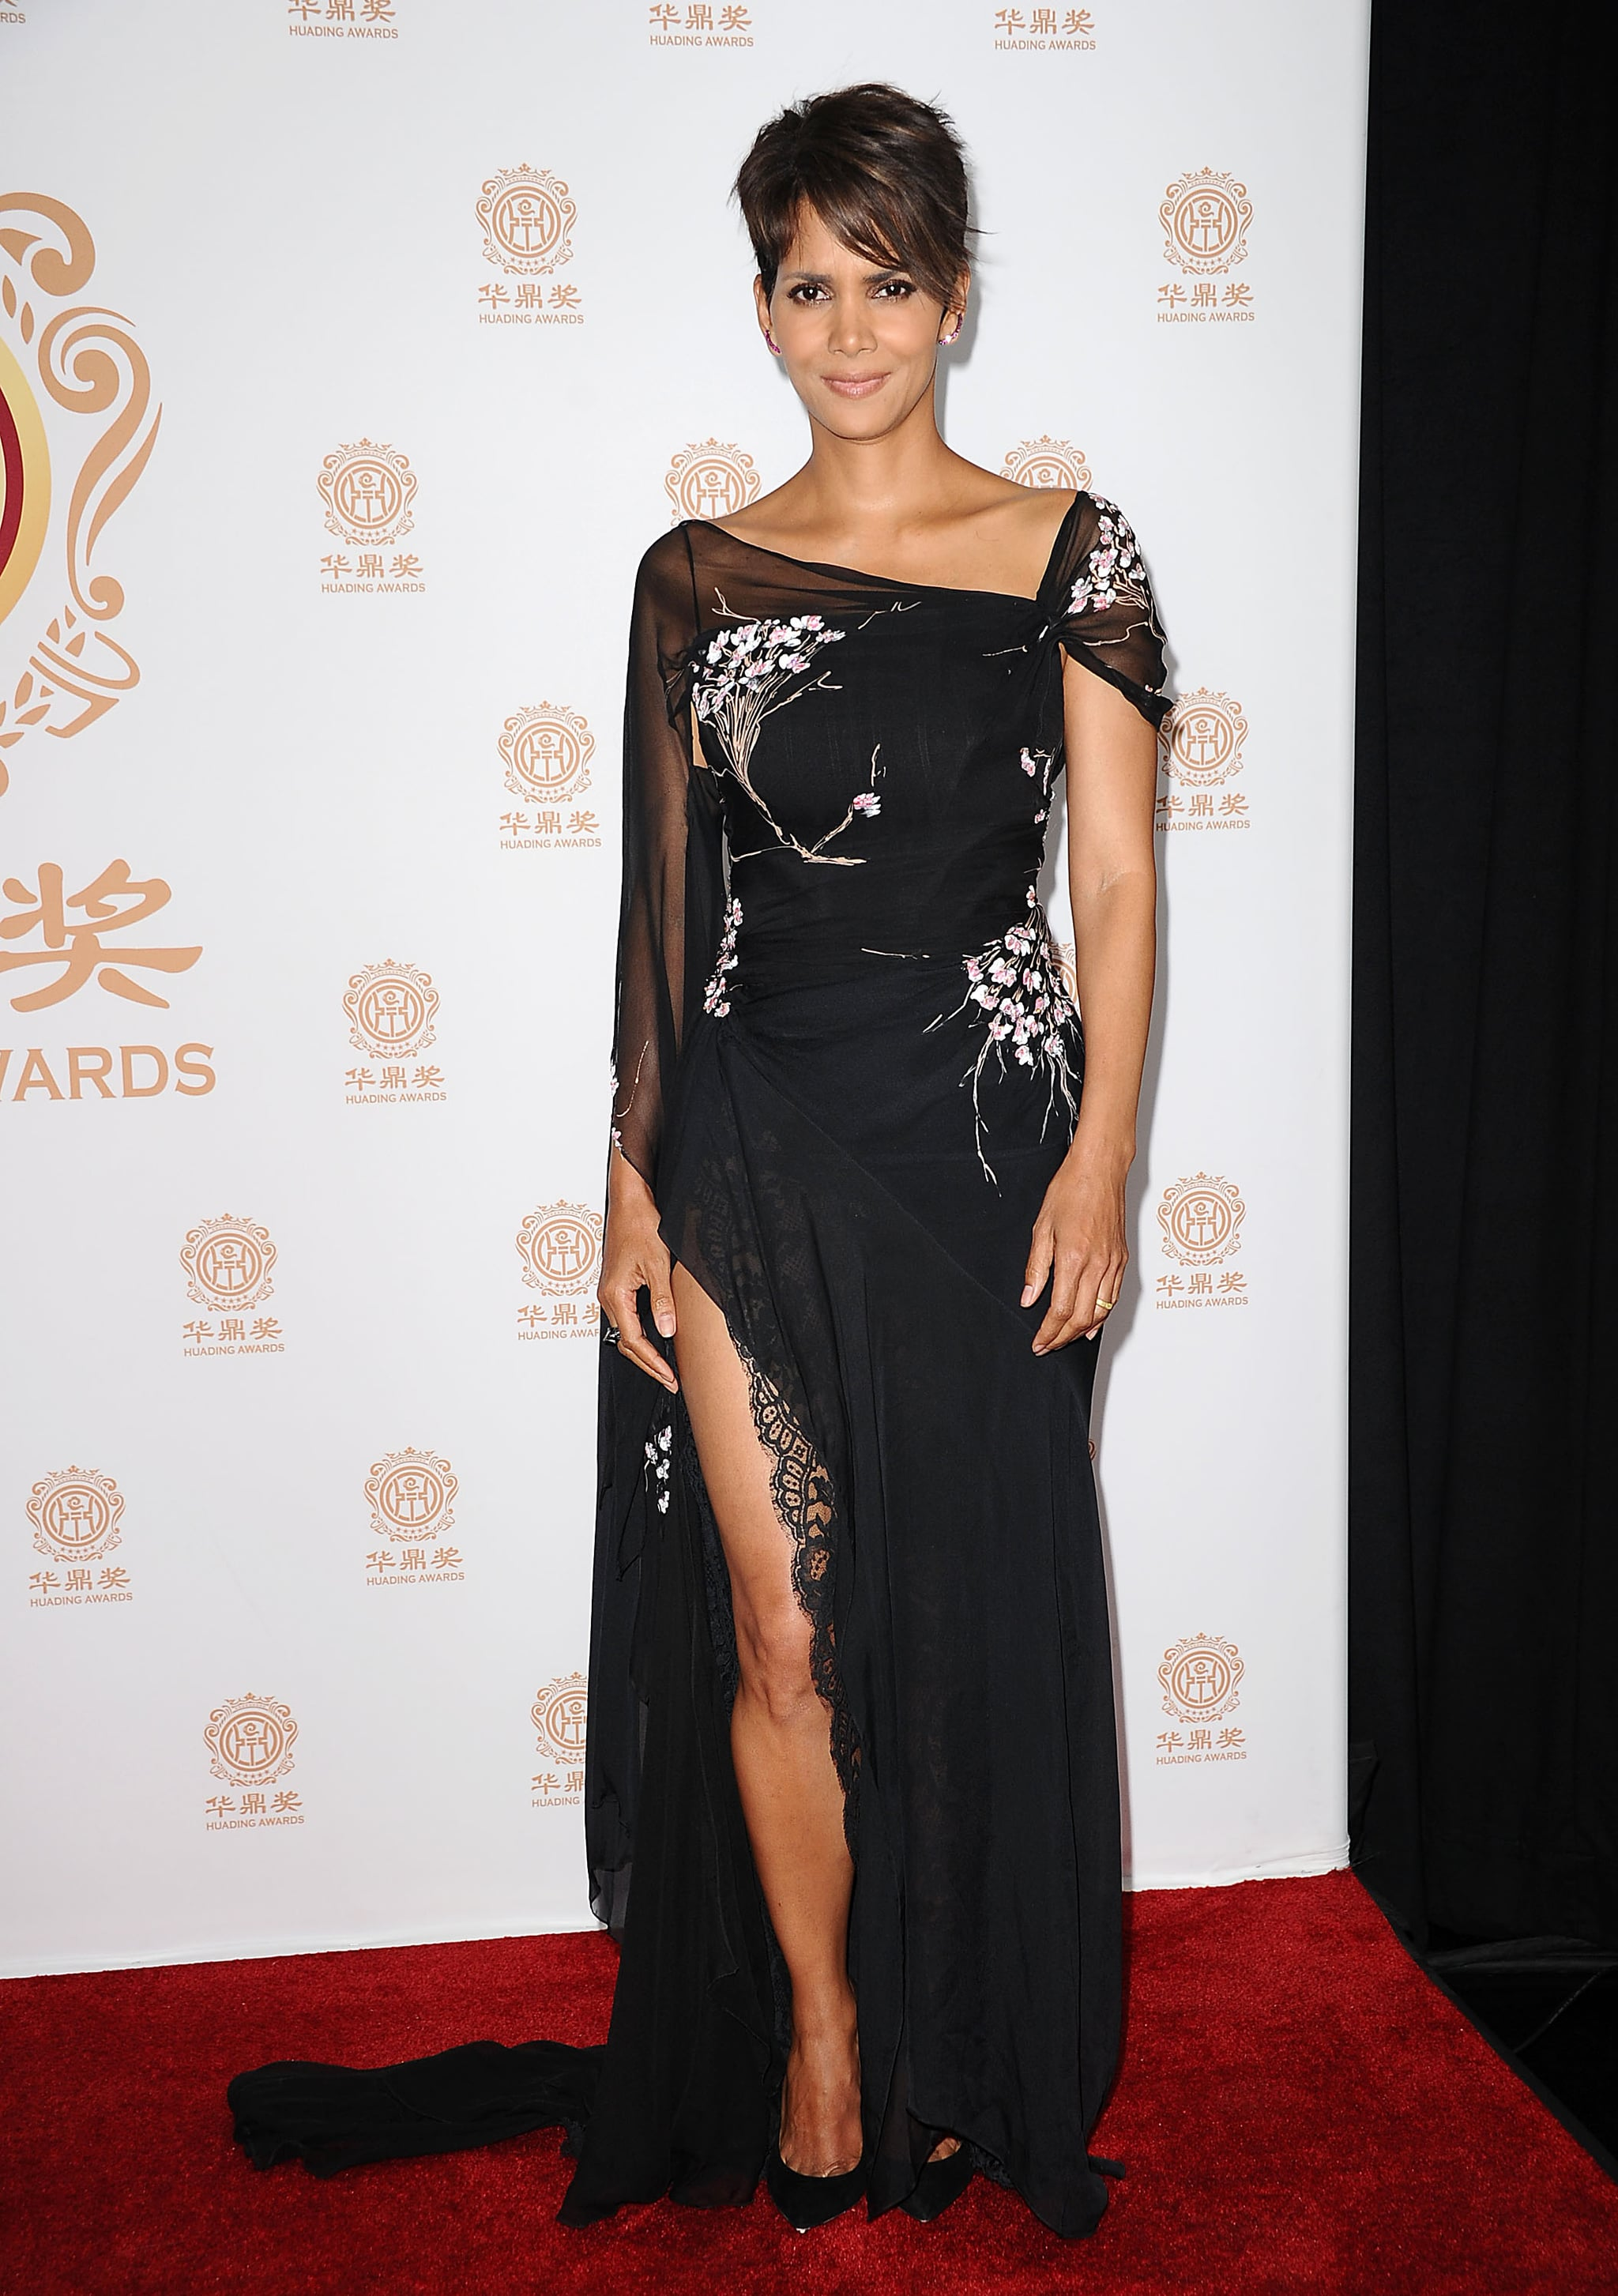 Halle Berry showed off her legs at the Huading Film Awards in LA on Sunday.